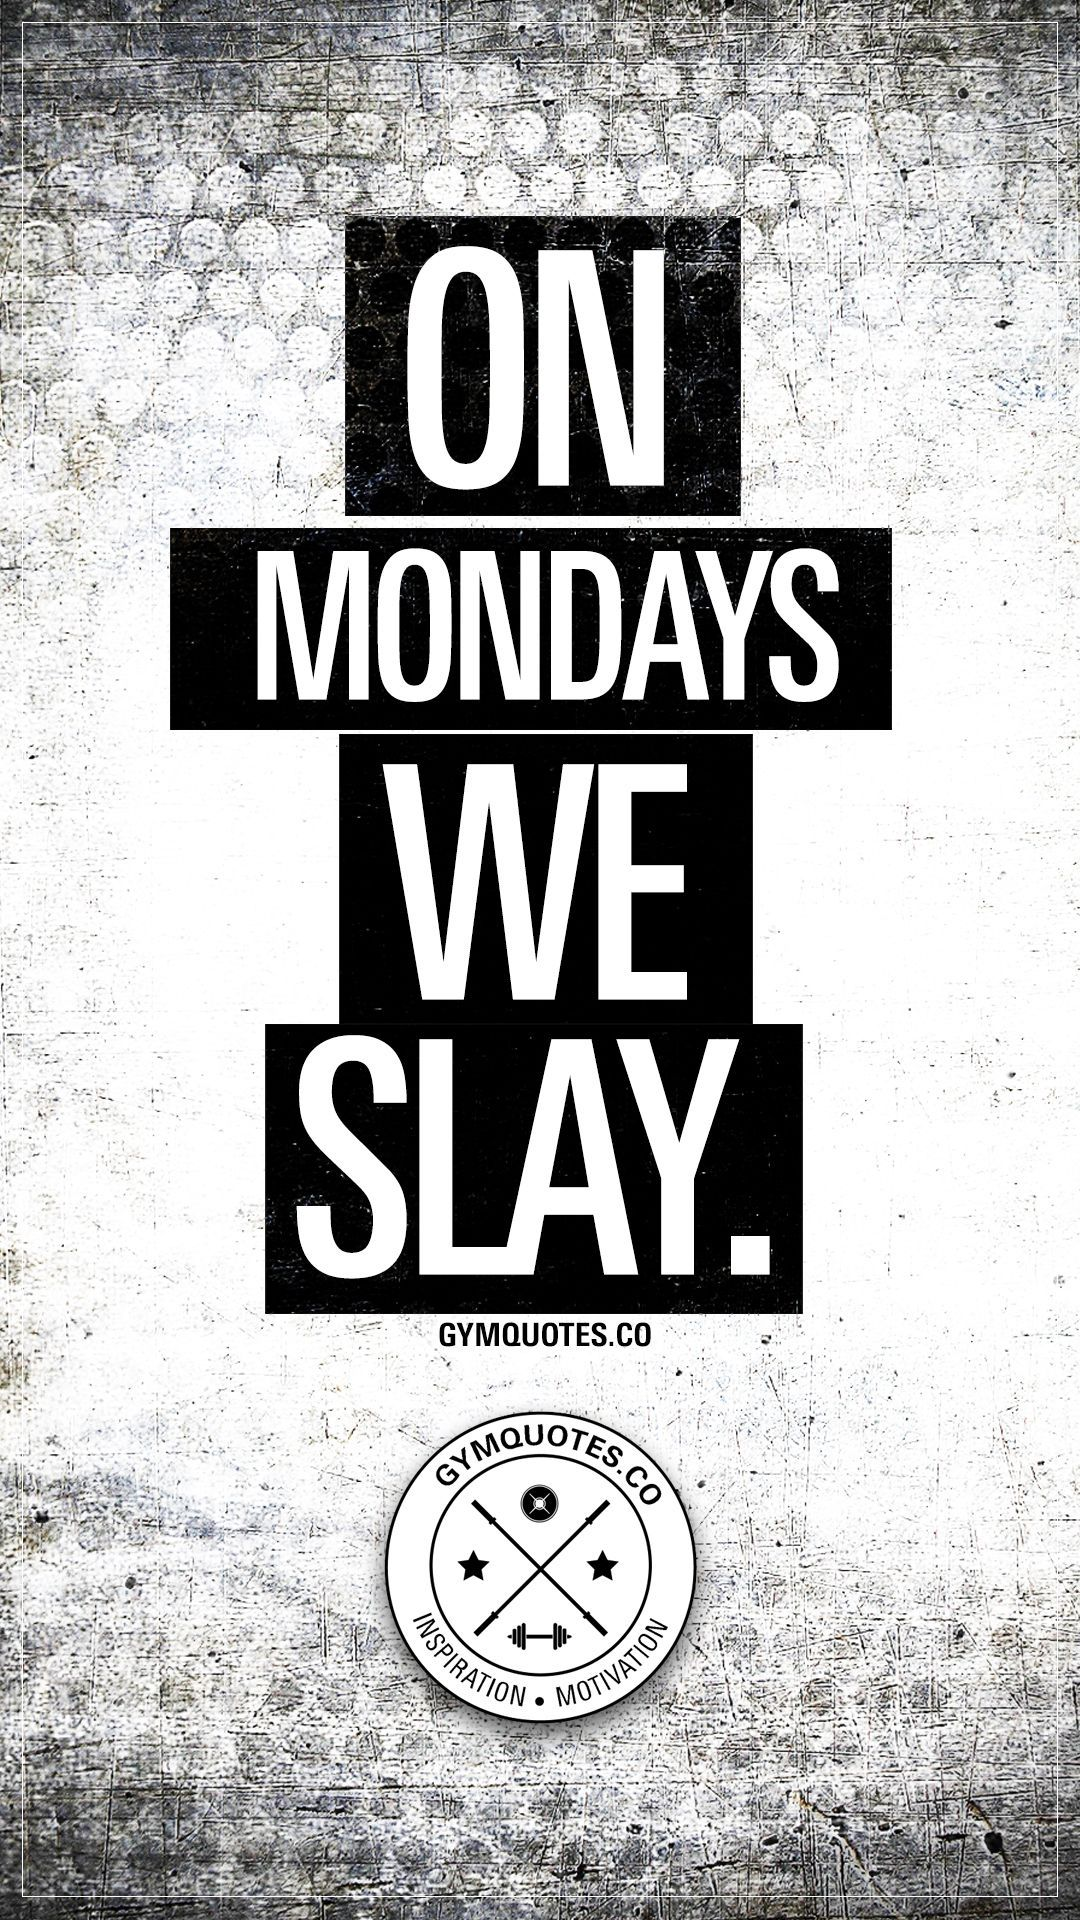 Gym Motivation: On Mondays we SLAY. New week. New day. Time to SLAY! #gym #motivation #fitness #work...